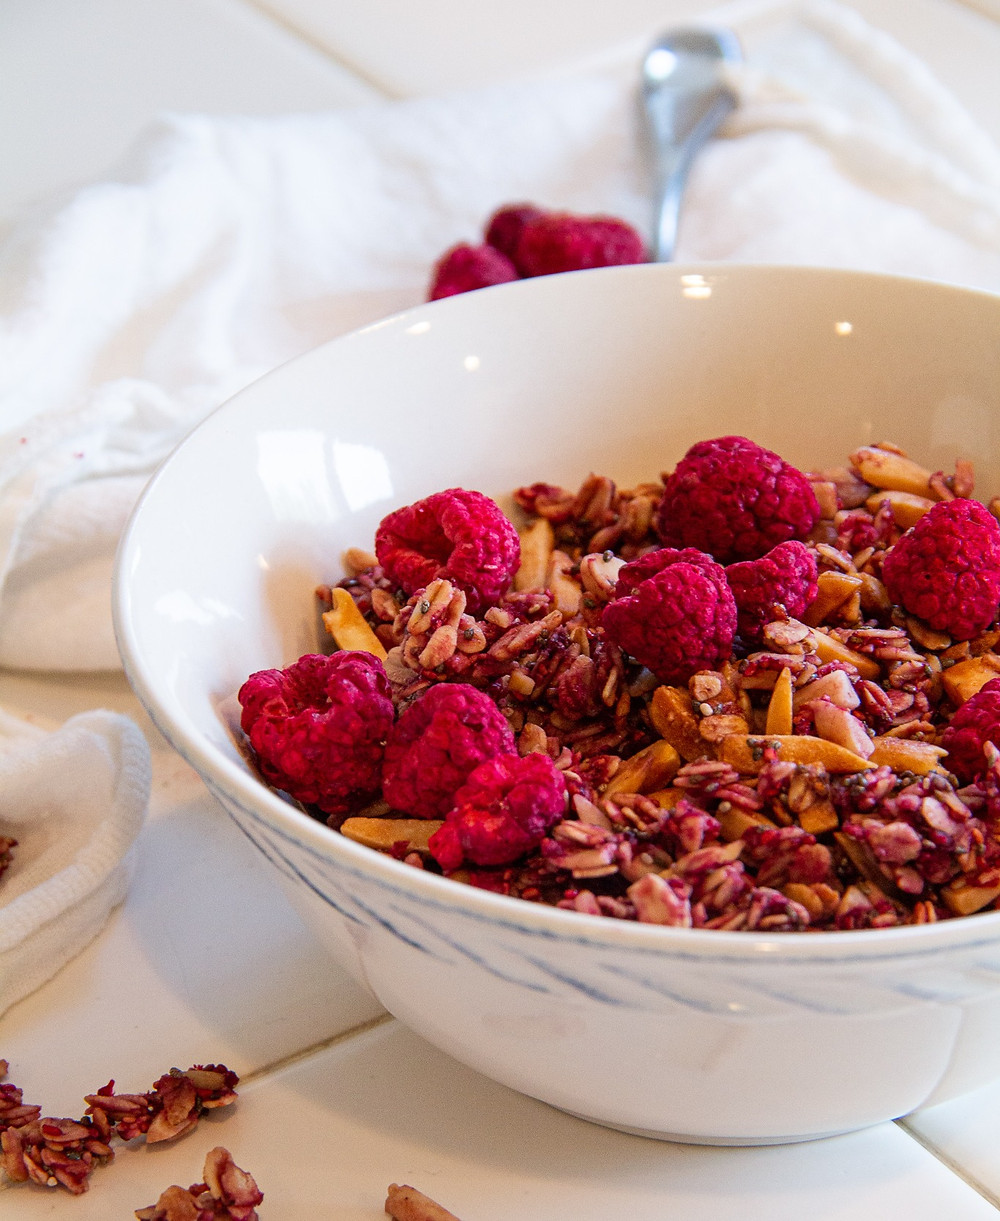 Bowl of raspberry almond granola with dried raspberries on top.